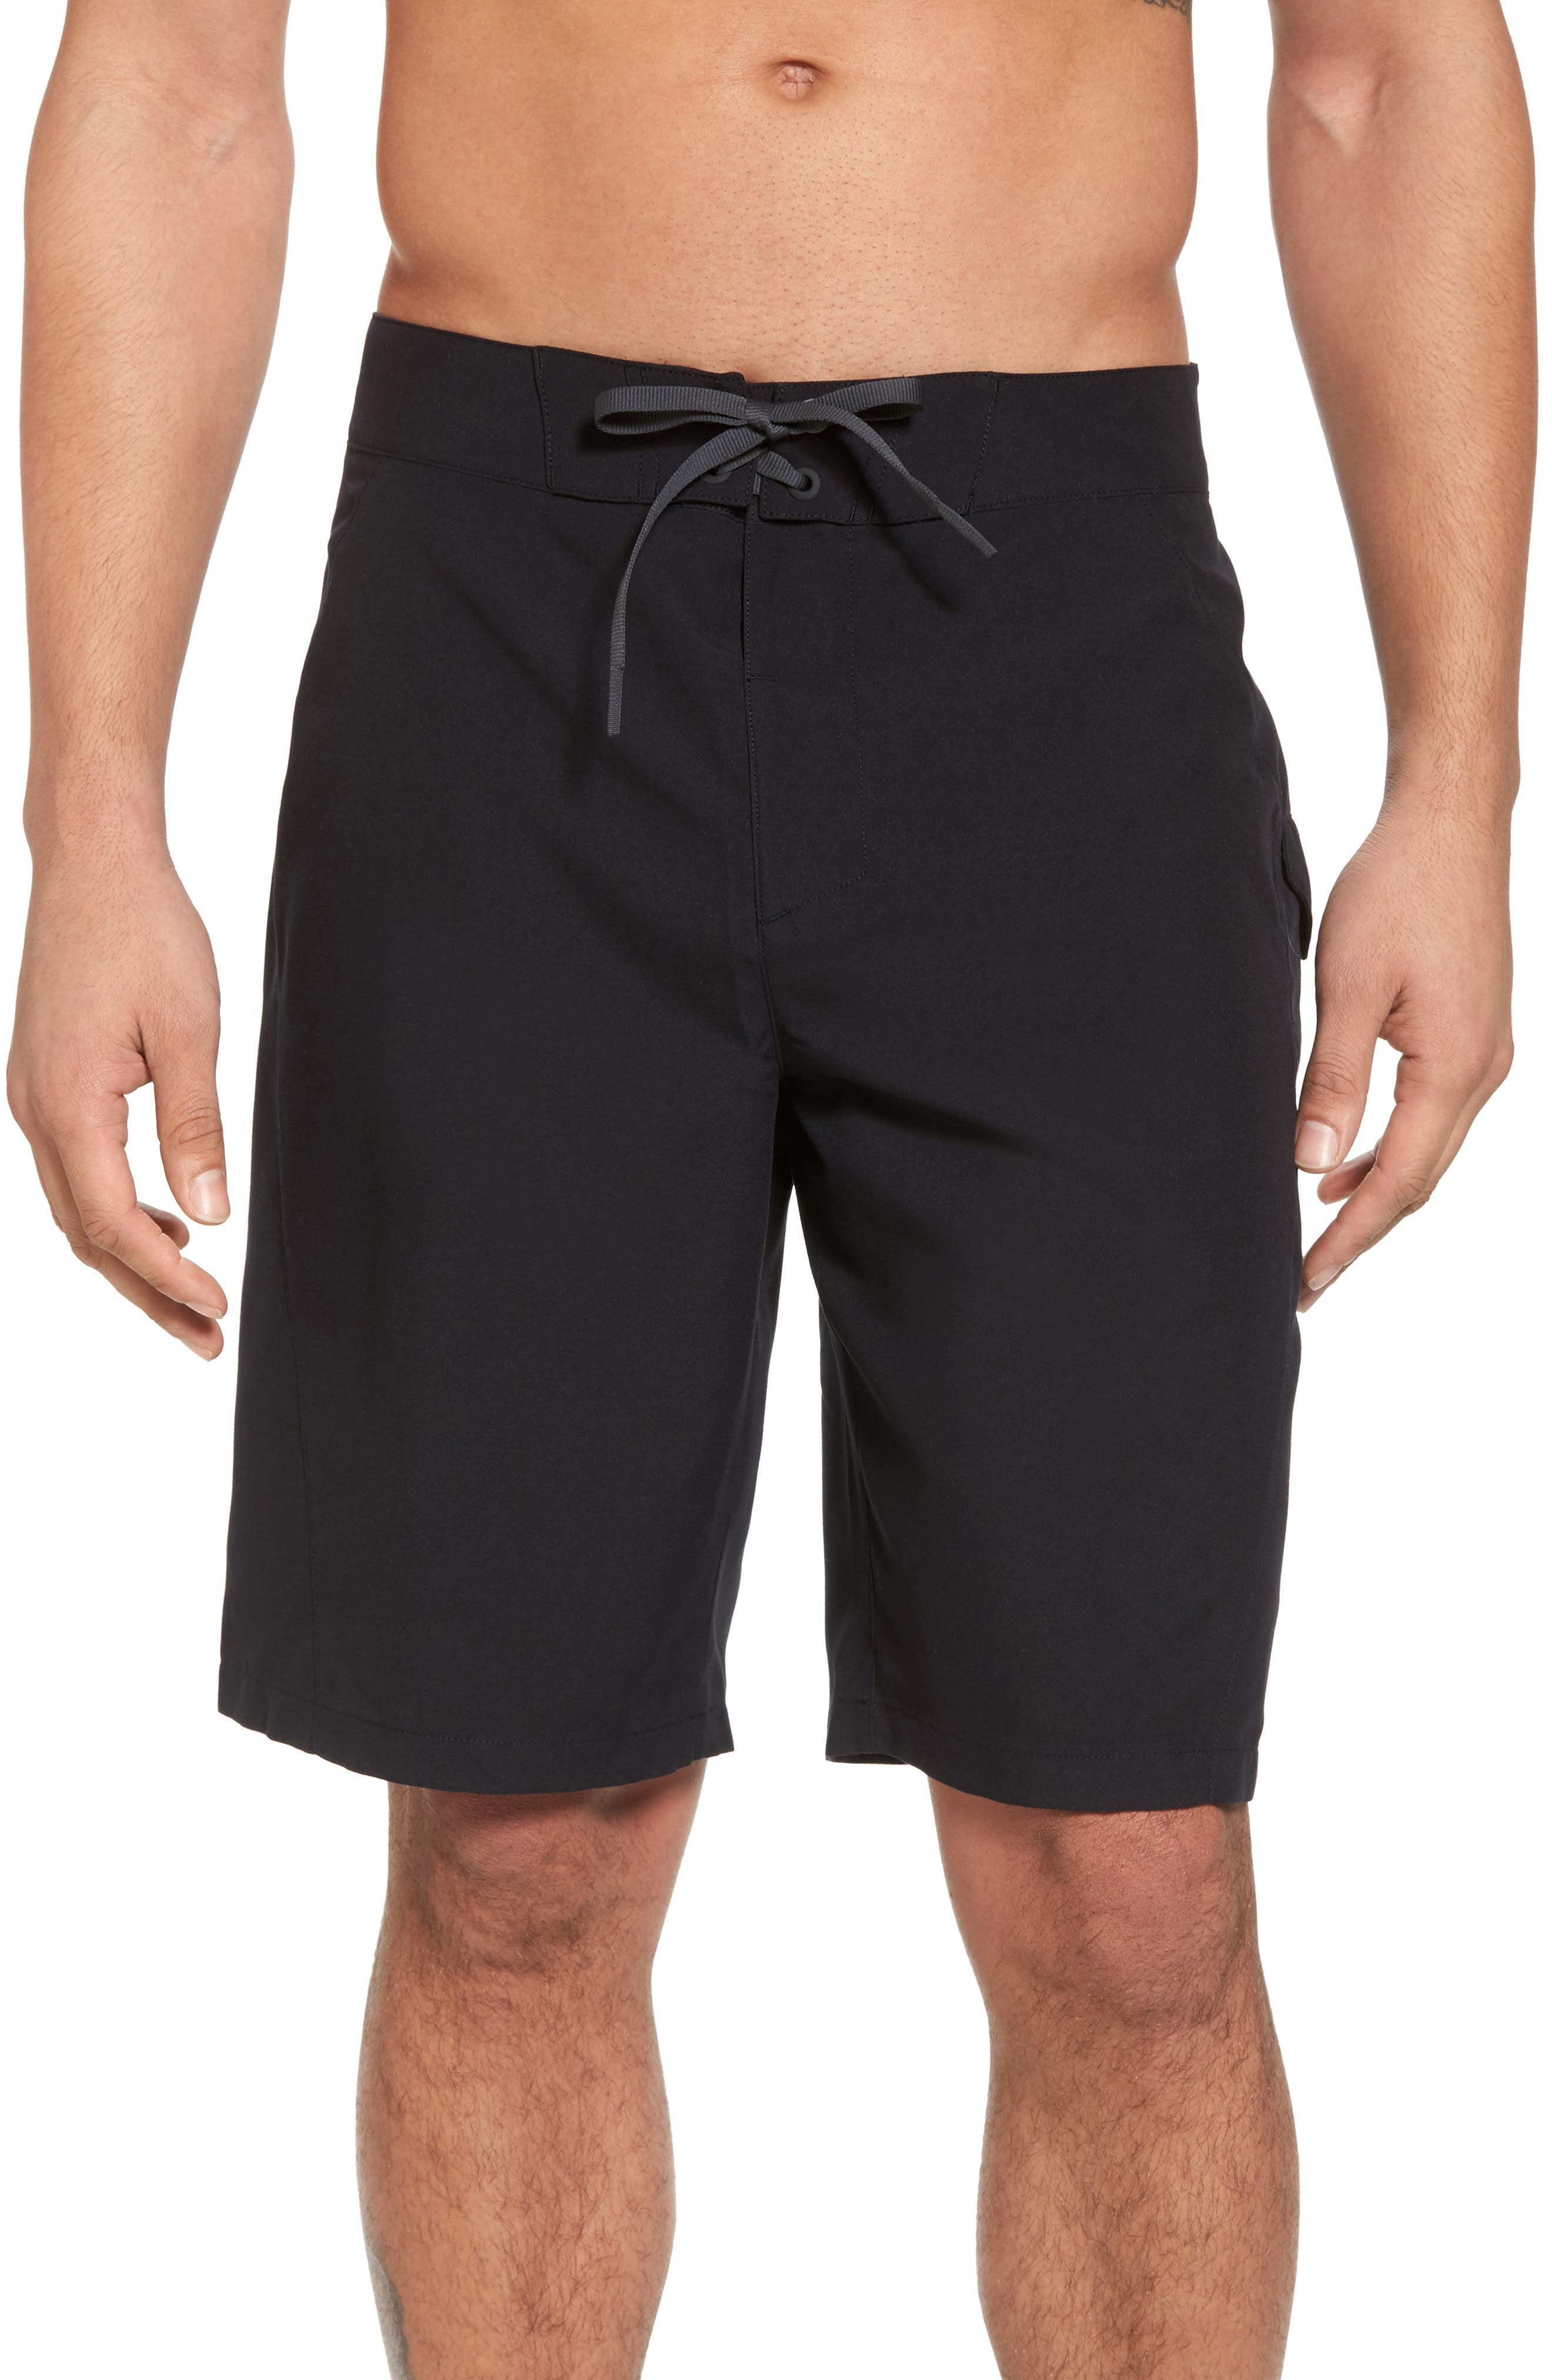 Mania Tidal Board Shorts,                         Main,                         color, Black / Grey / Graphite